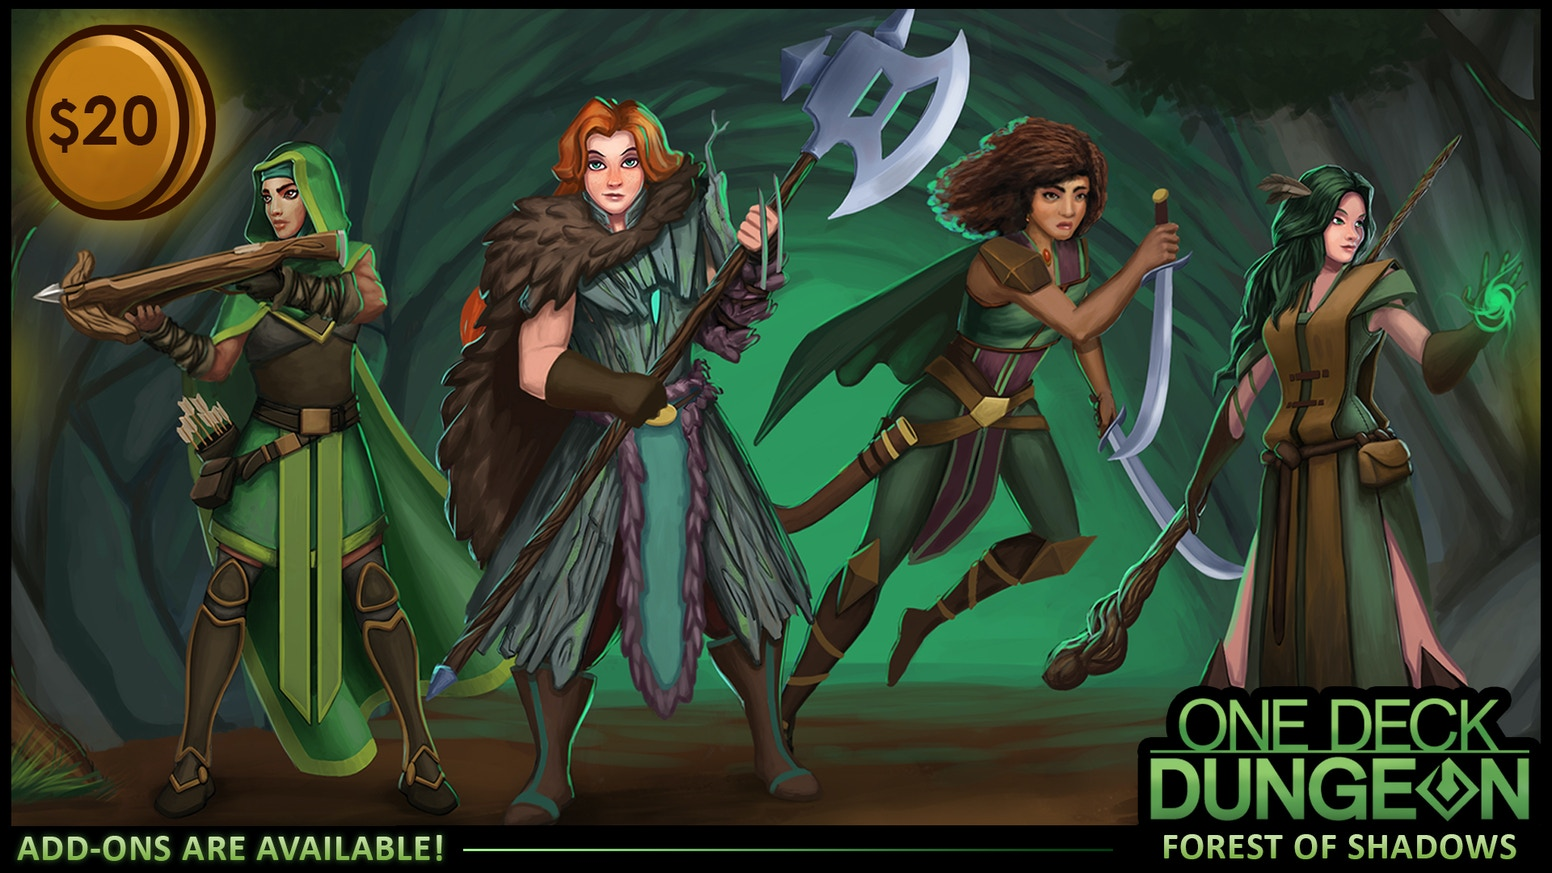 A stand-alone expansion to One Deck Dungeon, featuring new heroes, dungeons, combats, and perils. Get your dice ready for adventure!